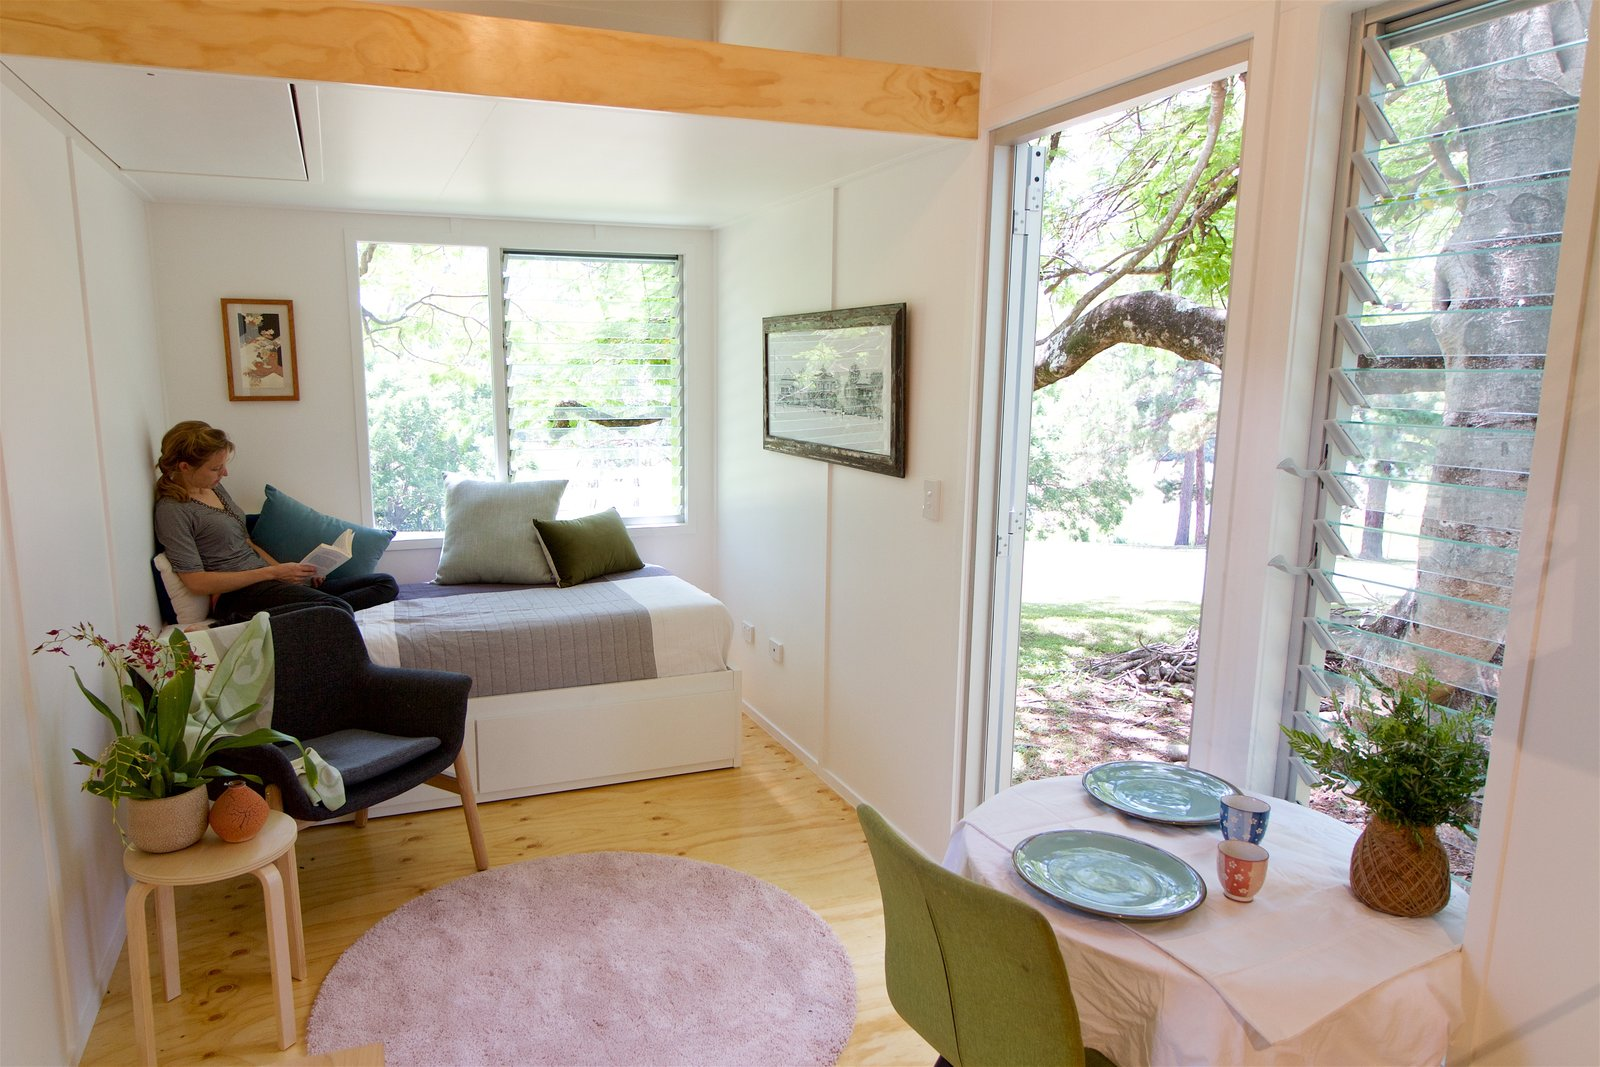 Bedroom, Bed, Light Hardwood Floor, Rug Floor, and Chair The sleeping loft can be accessed with a convenient retractable ladder with multiple grab-points that disappears into the ceiling when not in use.  Best Photos from This Midcentury-Inspired Tiny House Radiates Clever Design